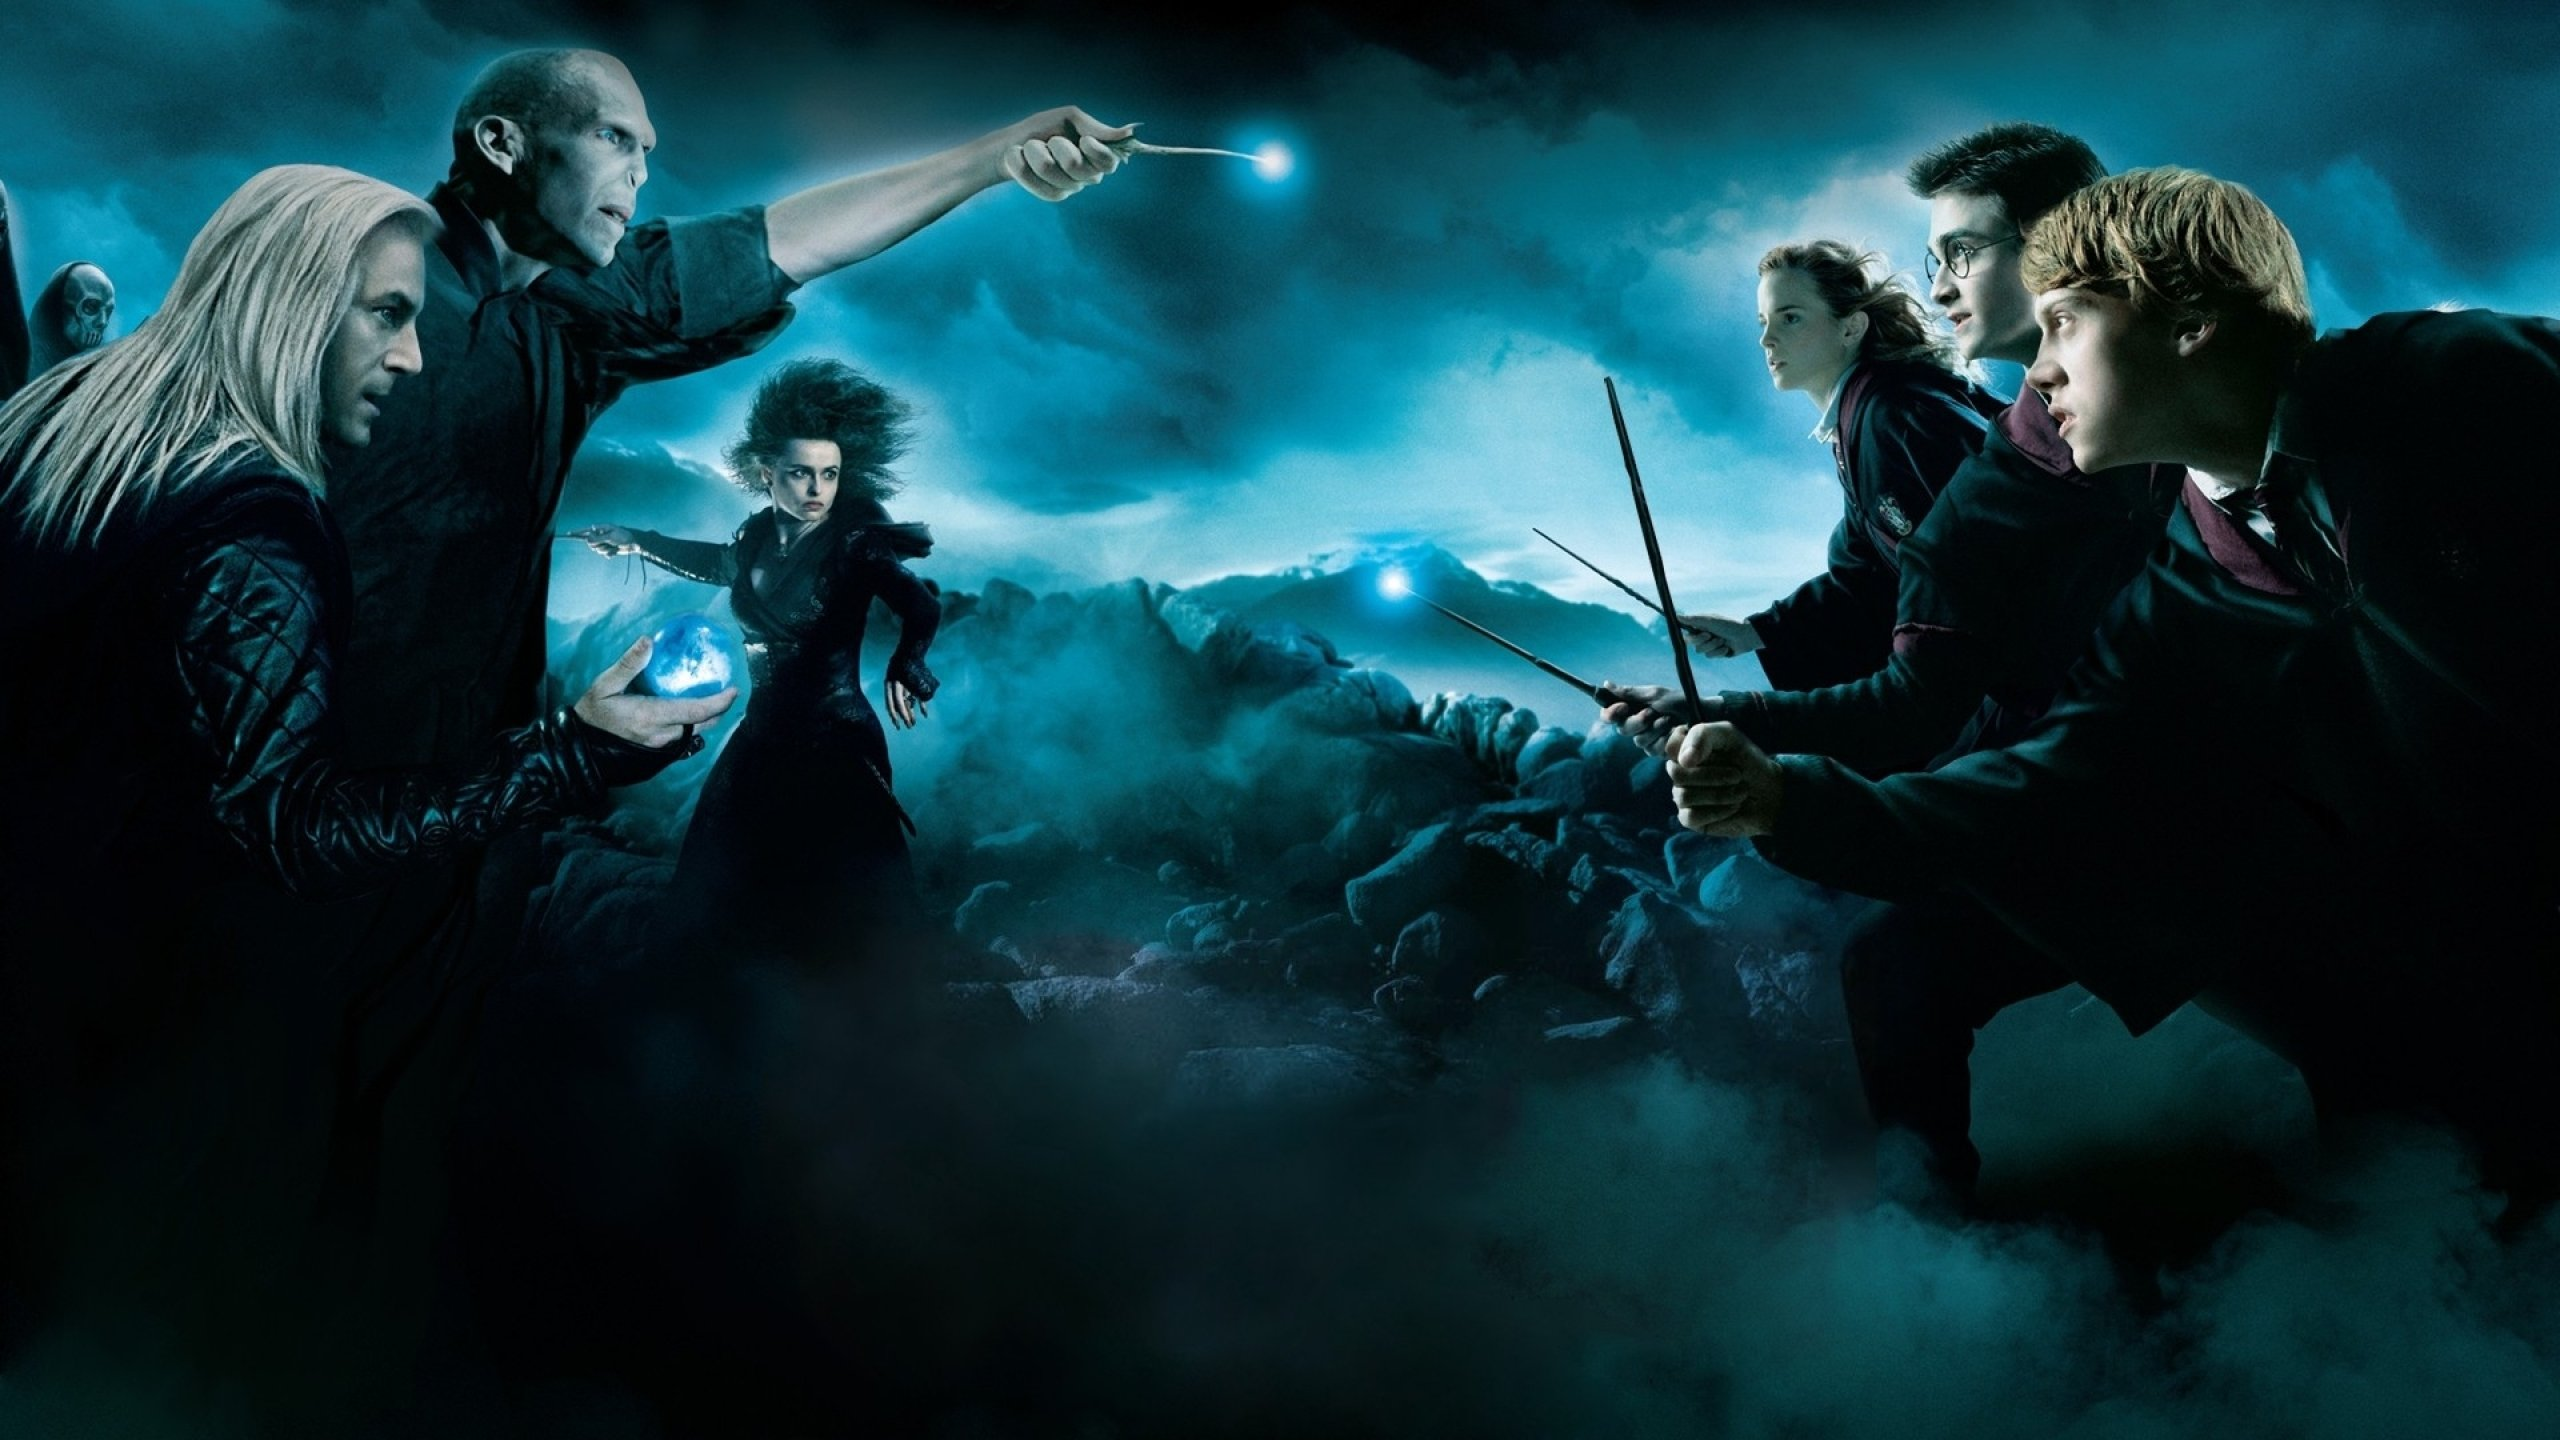 3d Video Wallpaper Download Harry Potter Free Hd Wallpapers Free Download Hd Wallpaper